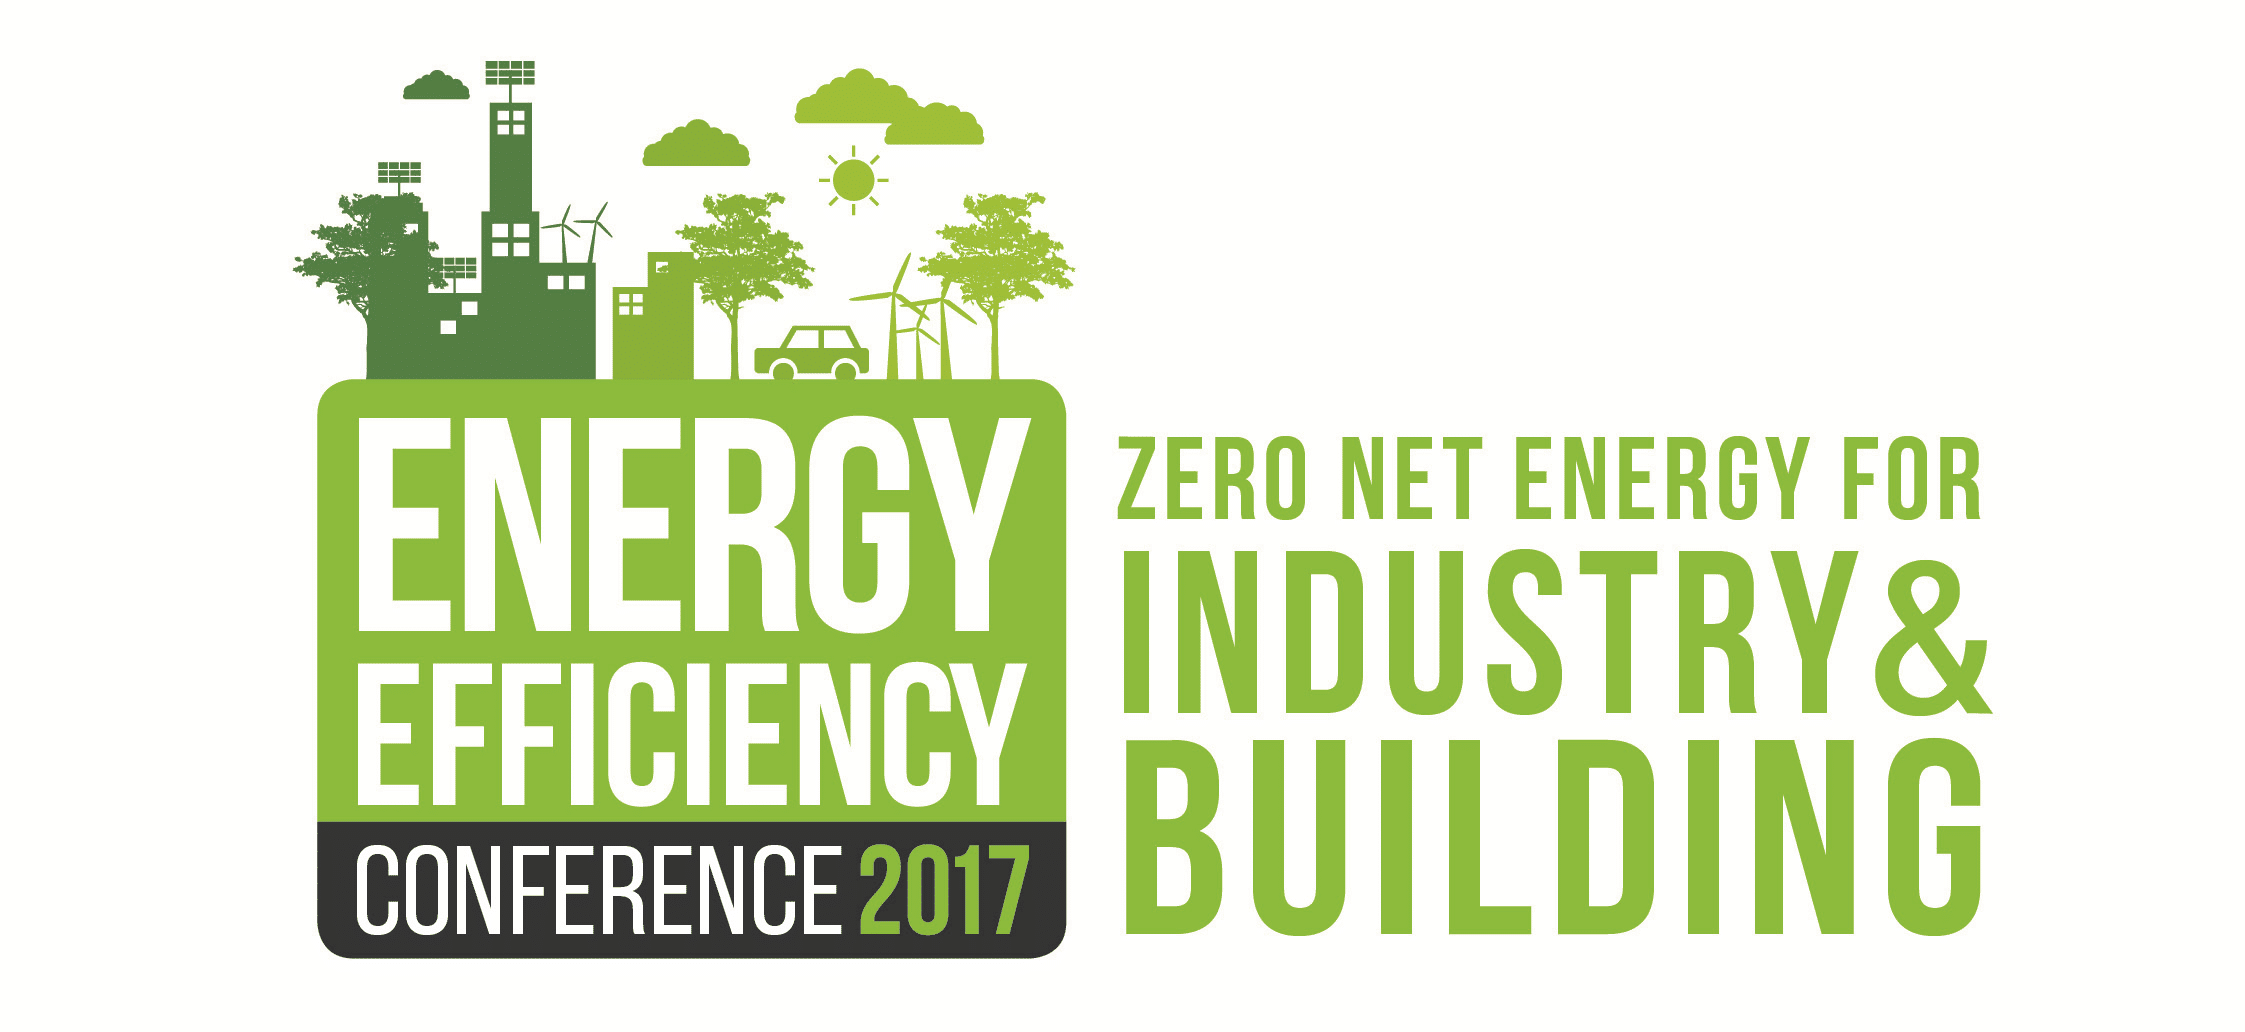 Η SustChem Engineering στην Energy Efficiency Conference 2017